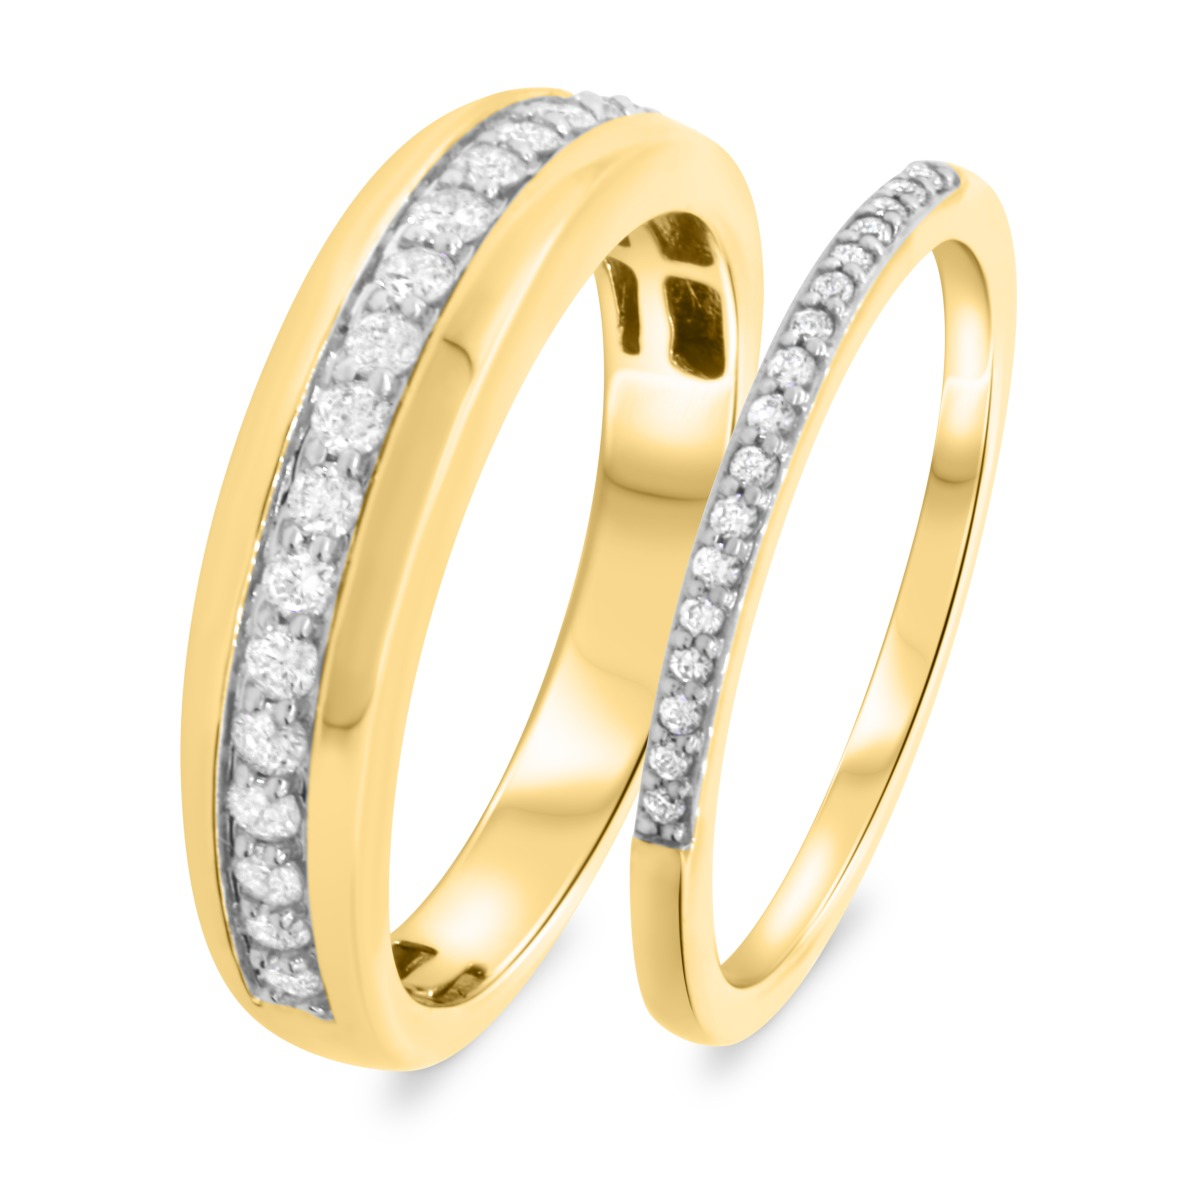 1/2 CT. T.W. Diamond Matching Wedding Band Set 14K Yellow Gold